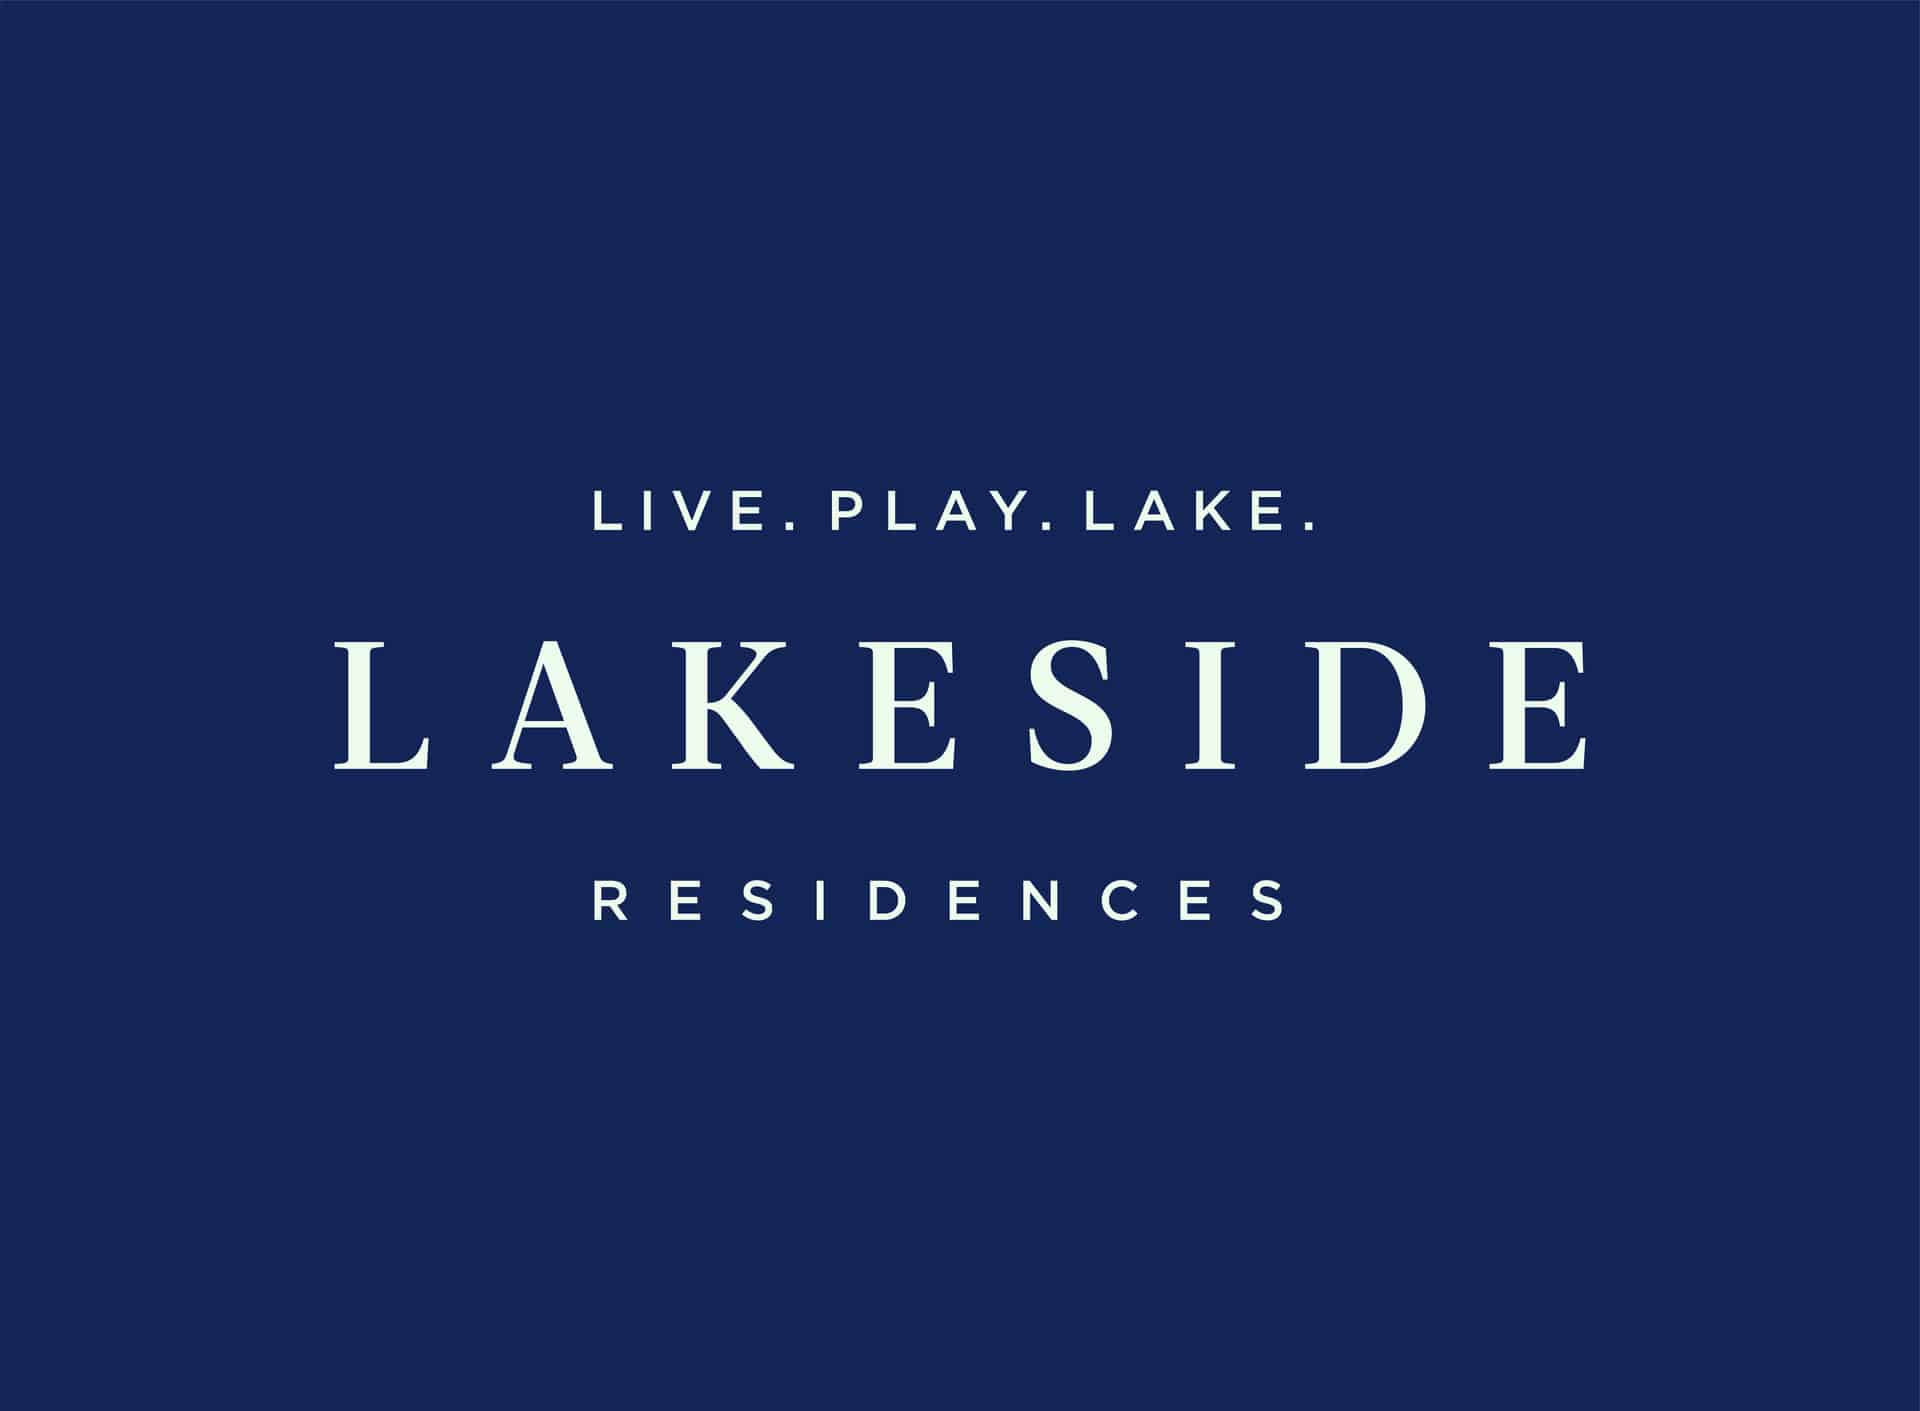 Lakeside Residences